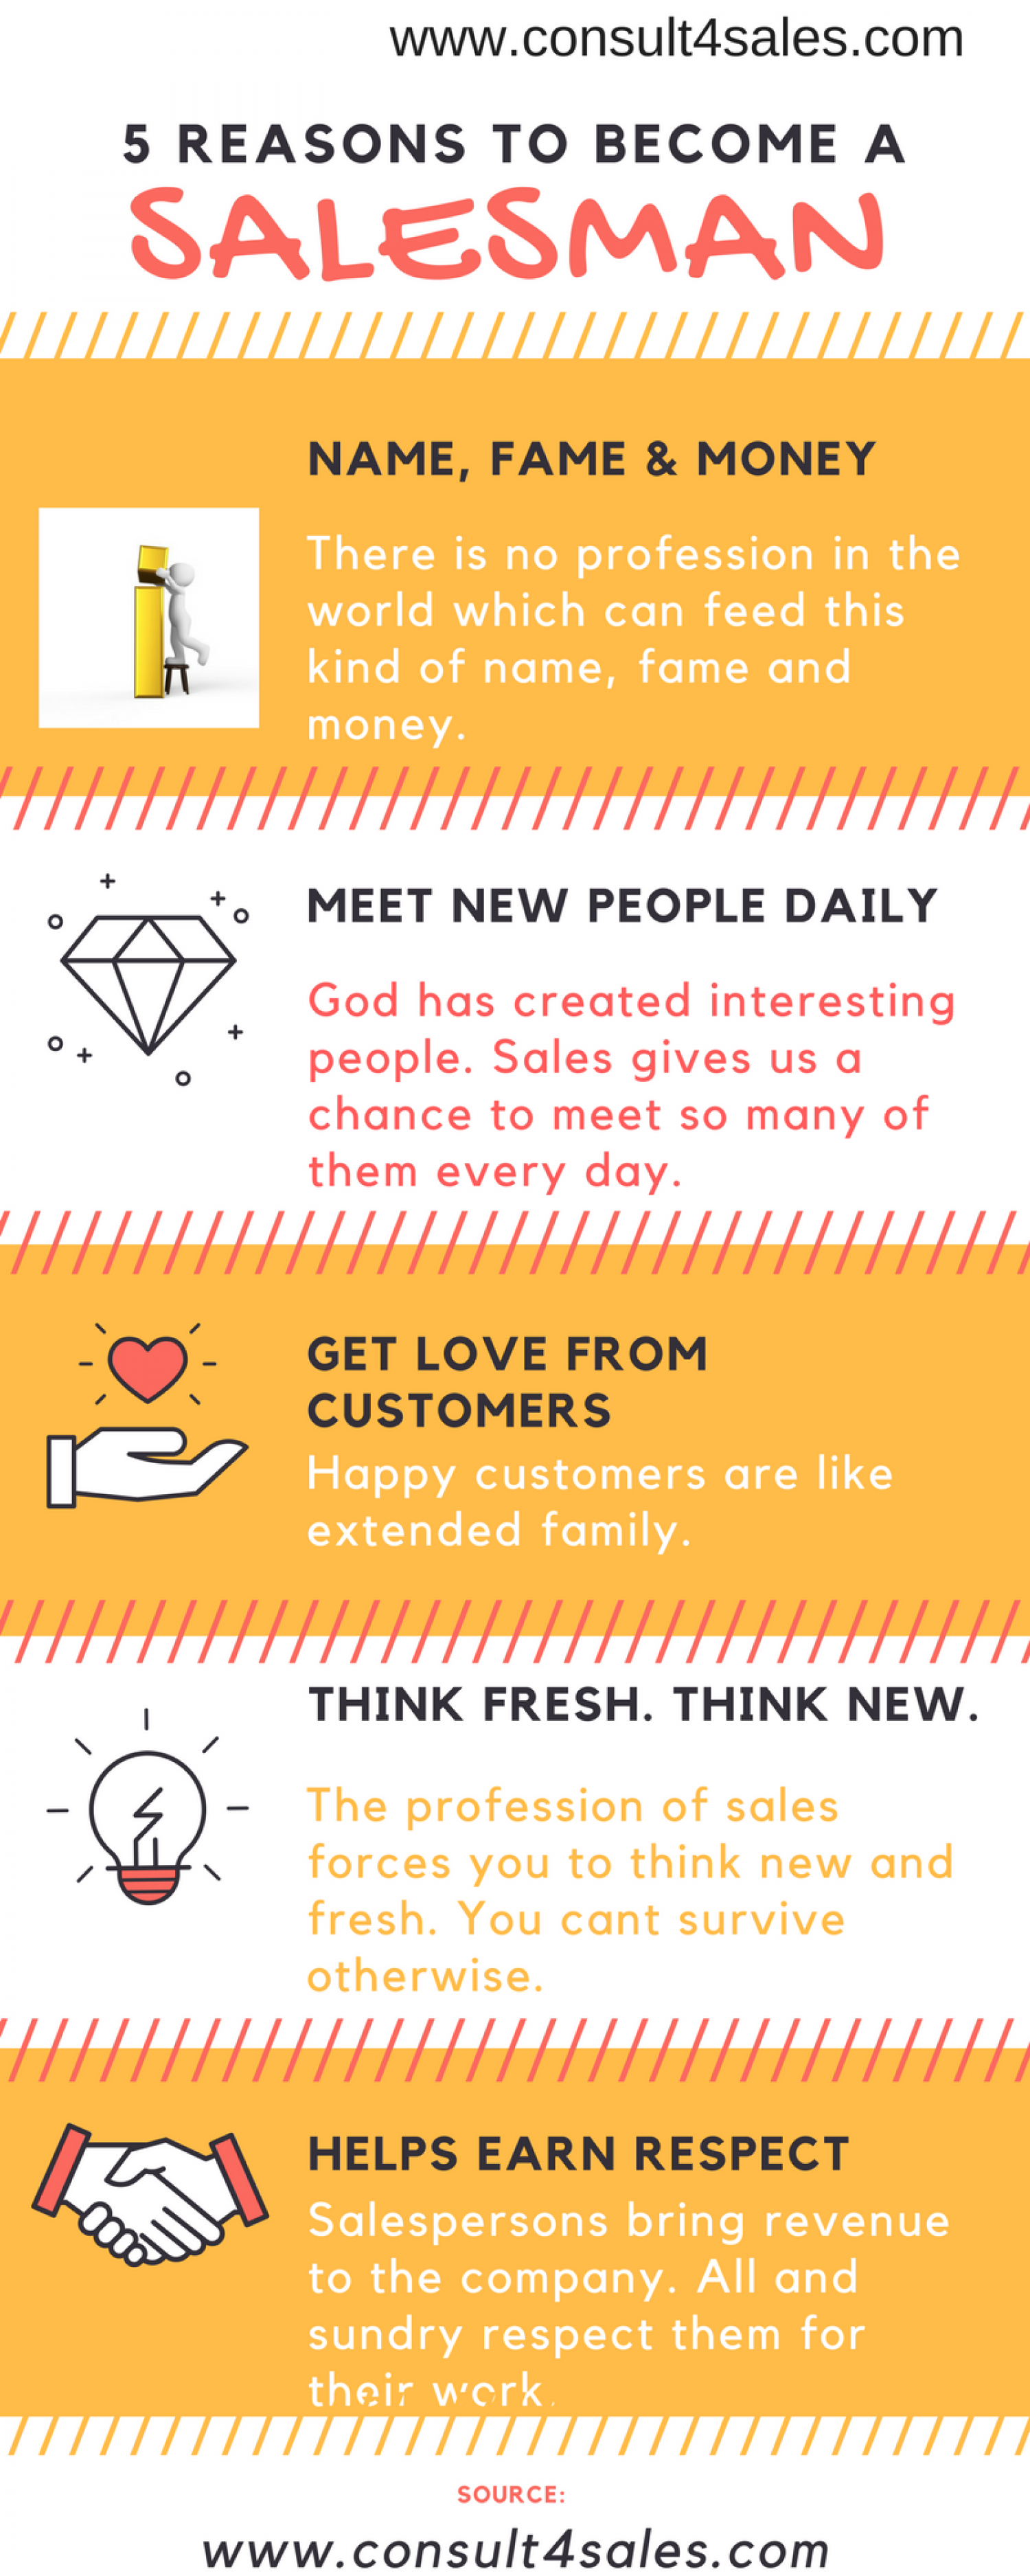 Sales Strategy & Methodology   Business Growth Consultant Infographic